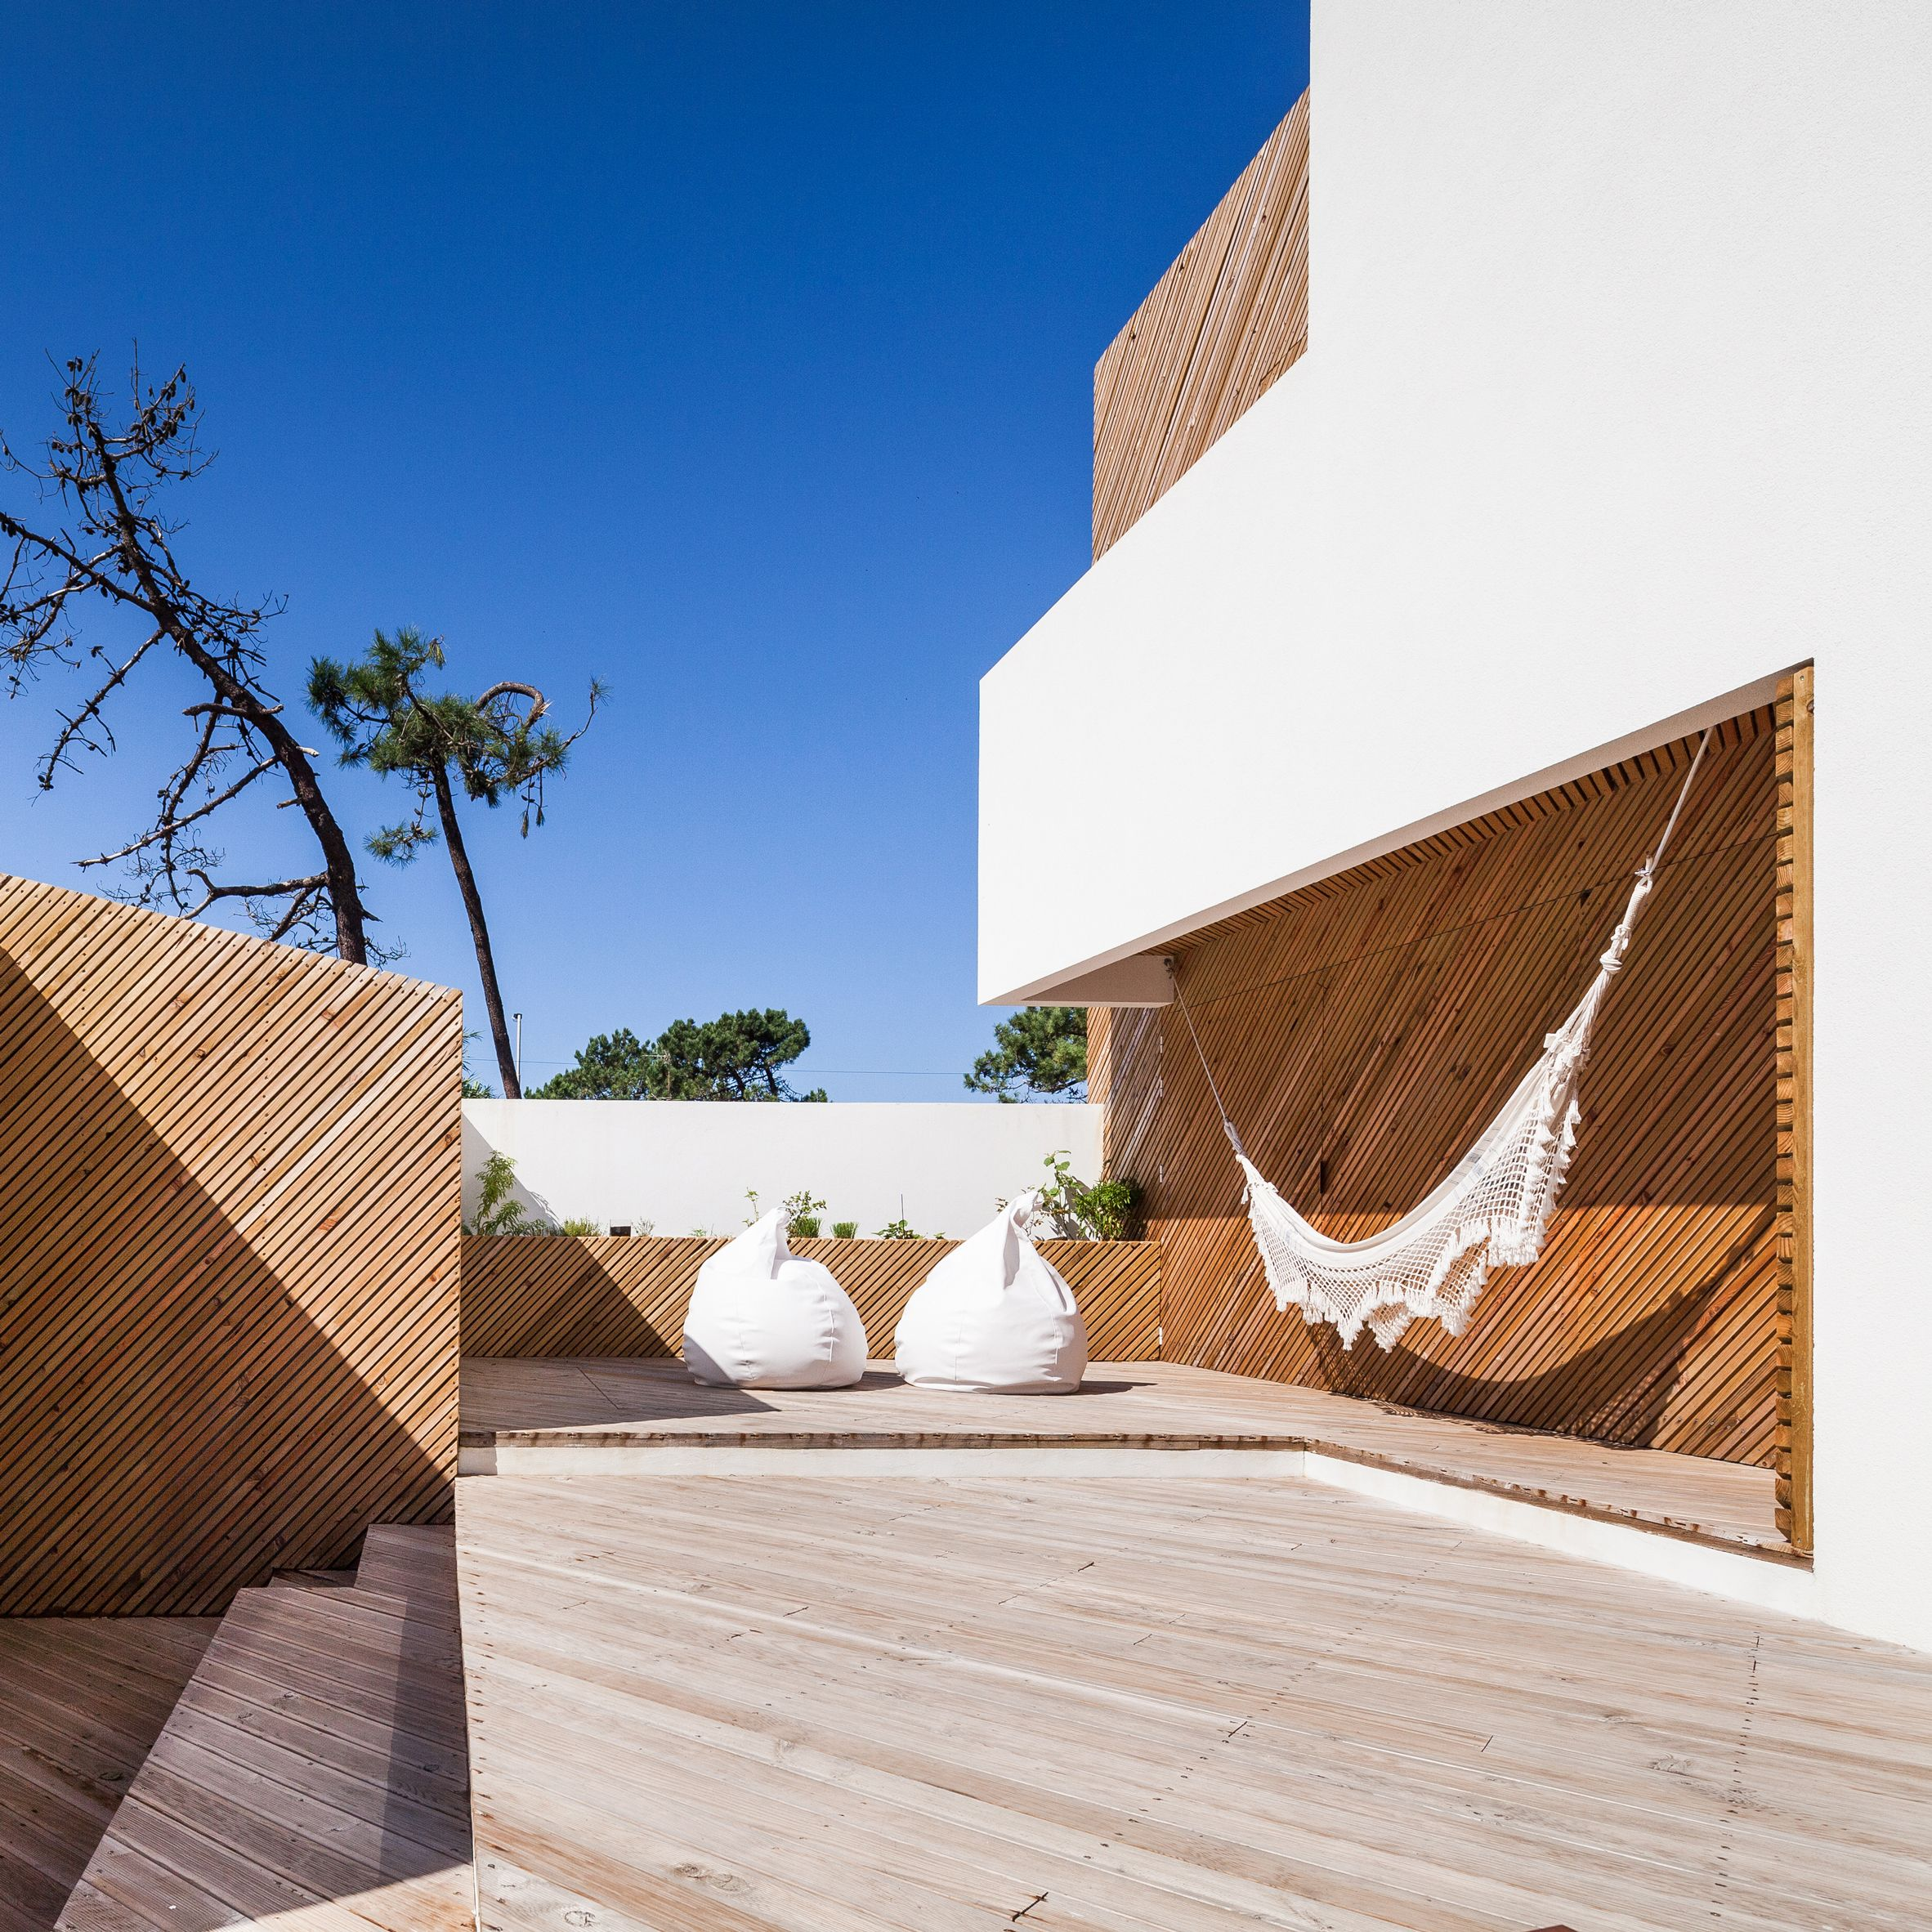 homes from dezeenus pinterest boards that use hammocks net and